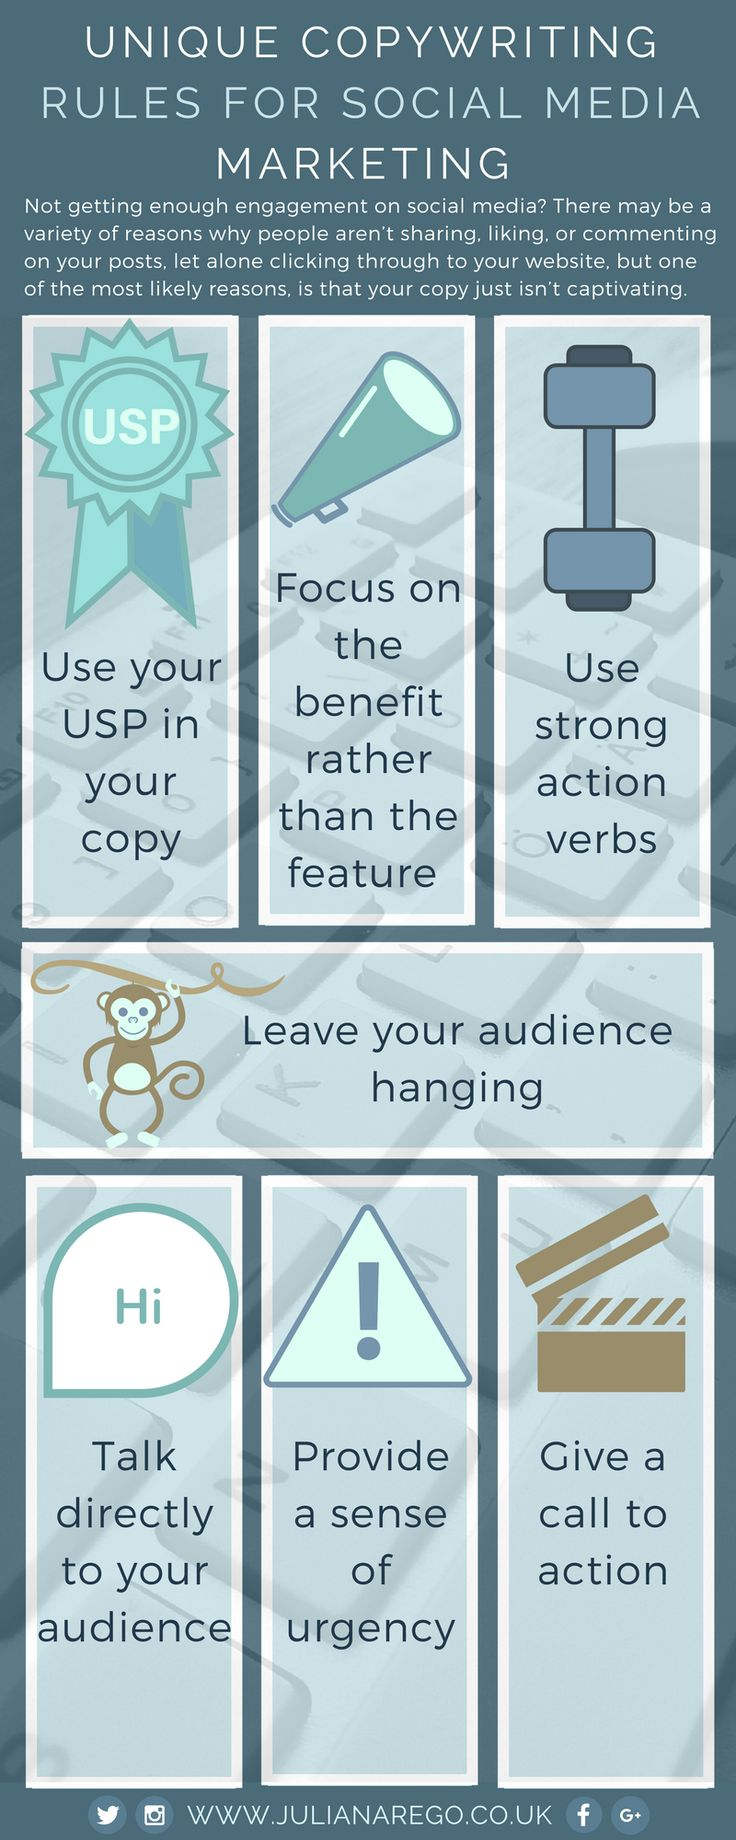 176 best social media tips images on pinterest snood tips and find this pin and more on social media tips by srhuffman89 fandeluxe Images